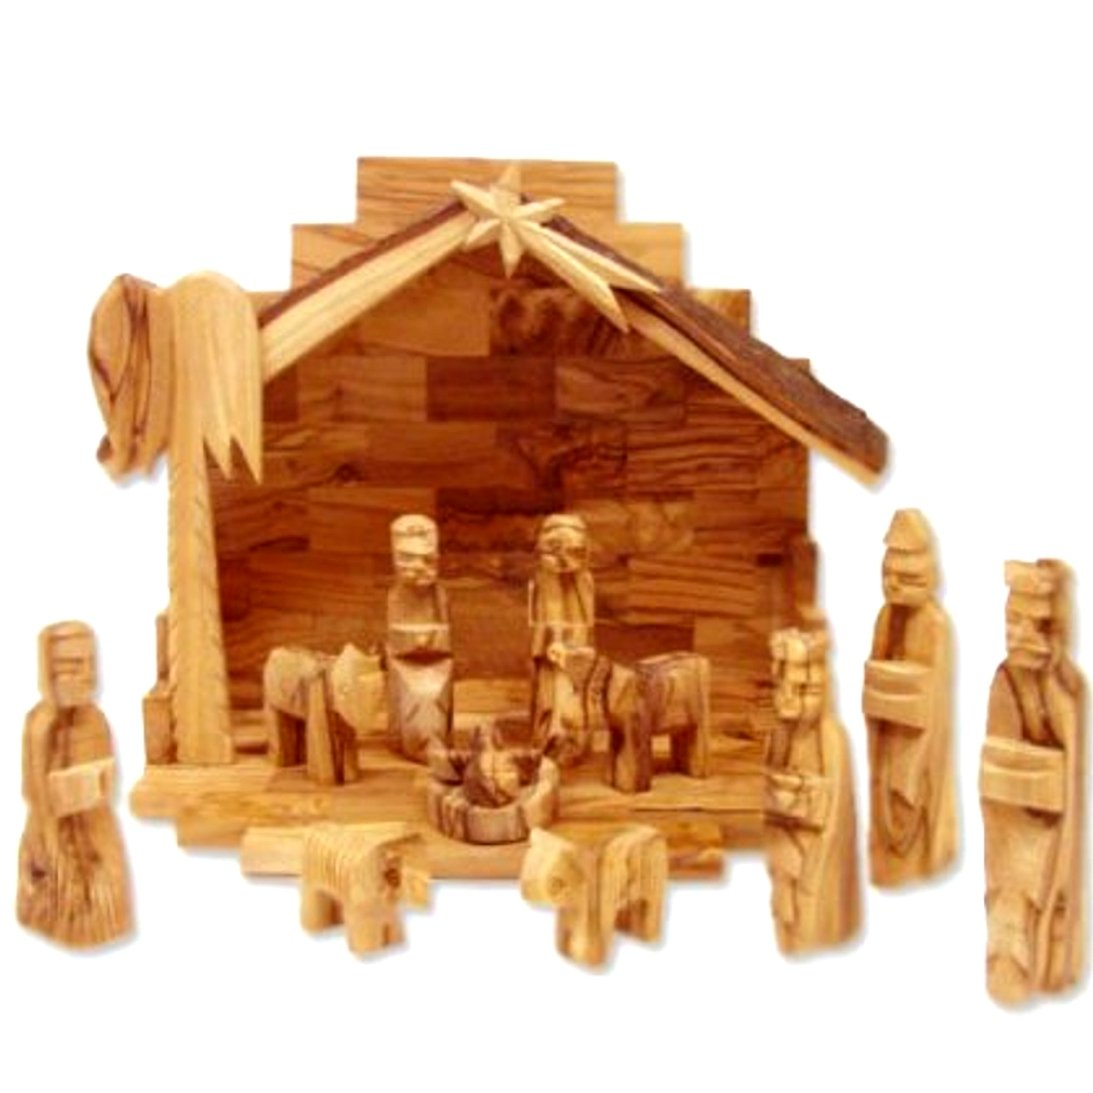 Olive Wood Miniature Set with Stable 12 pieces (Bark Roof Stable)